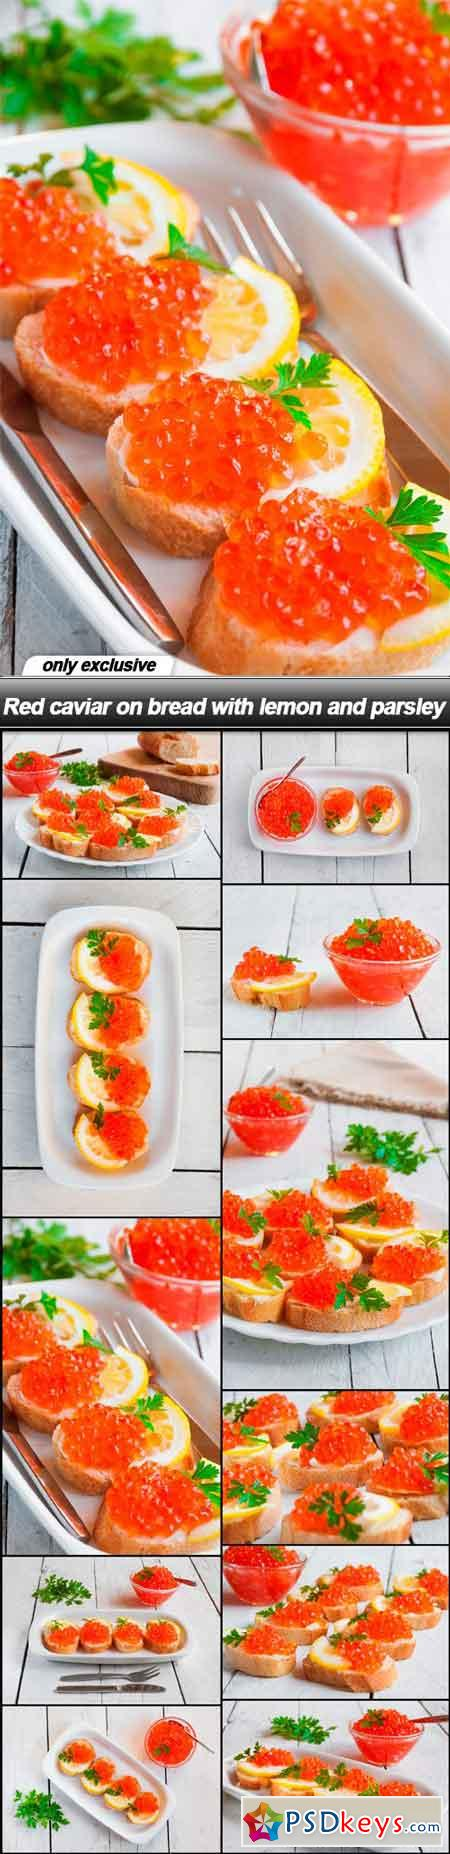 Red caviar on bread with lemon and parsley - 11 UHQ JPEG